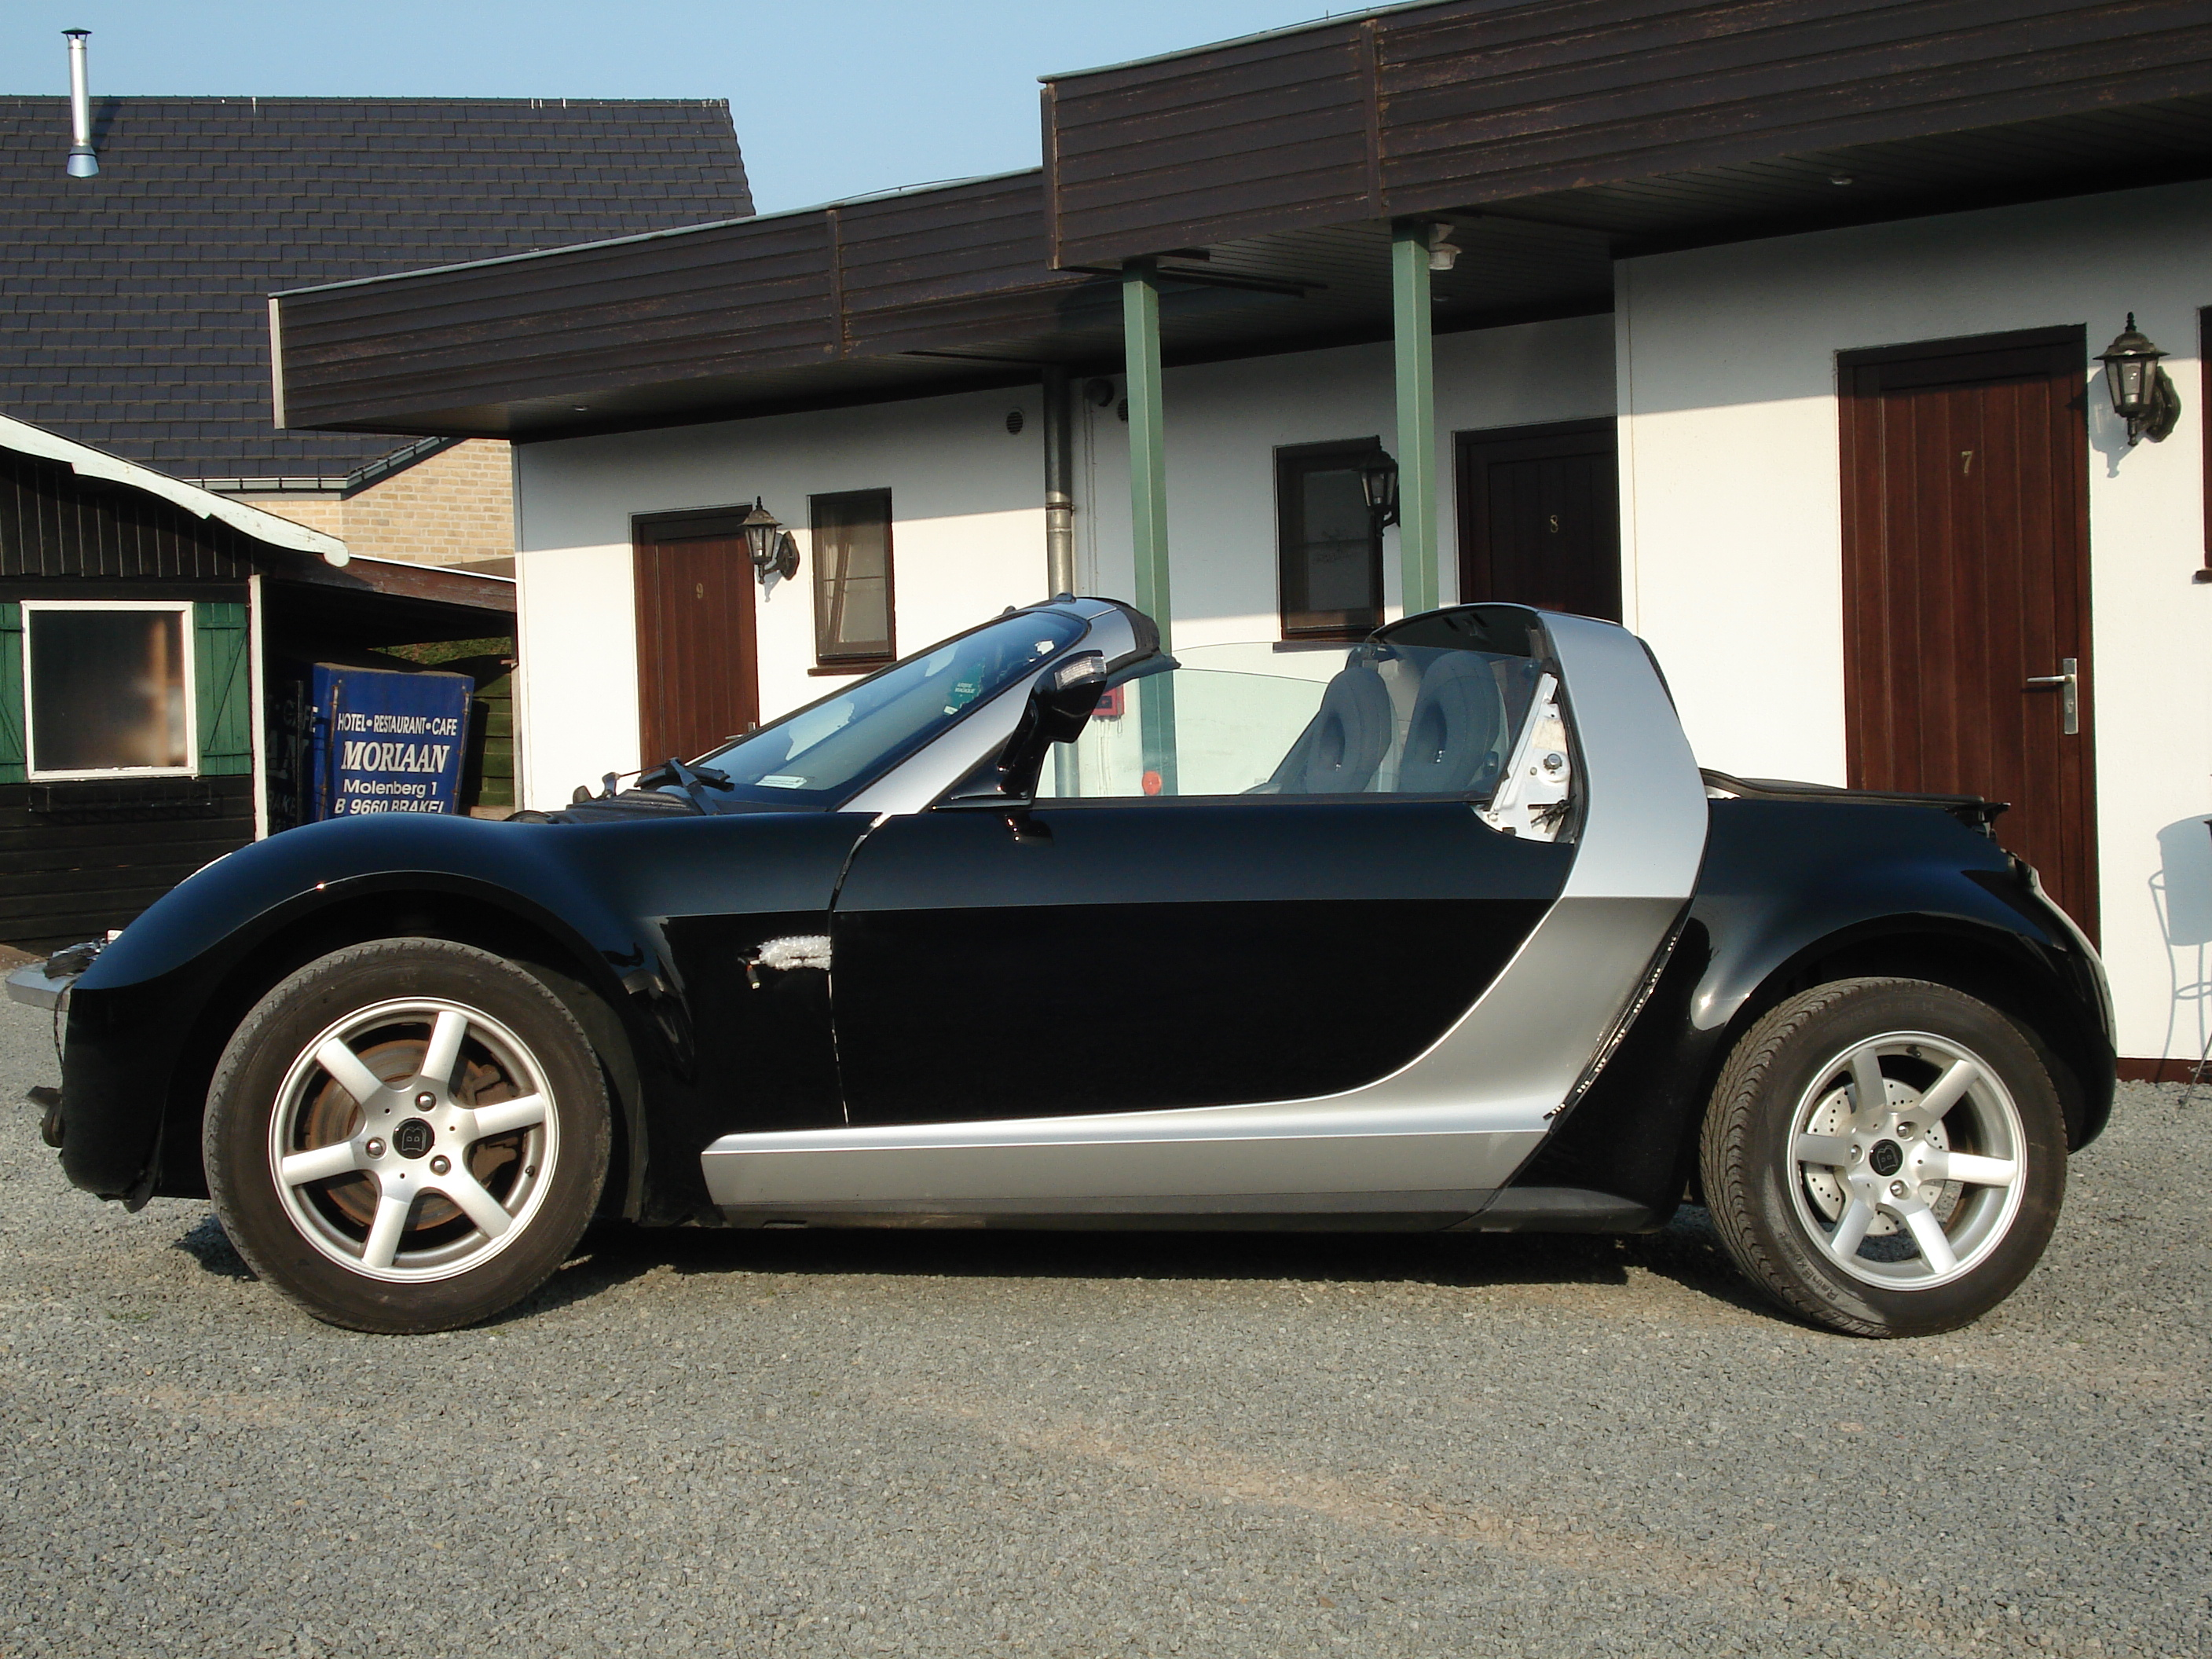 miami j 2006 smart roadster specs photos modification. Black Bedroom Furniture Sets. Home Design Ideas